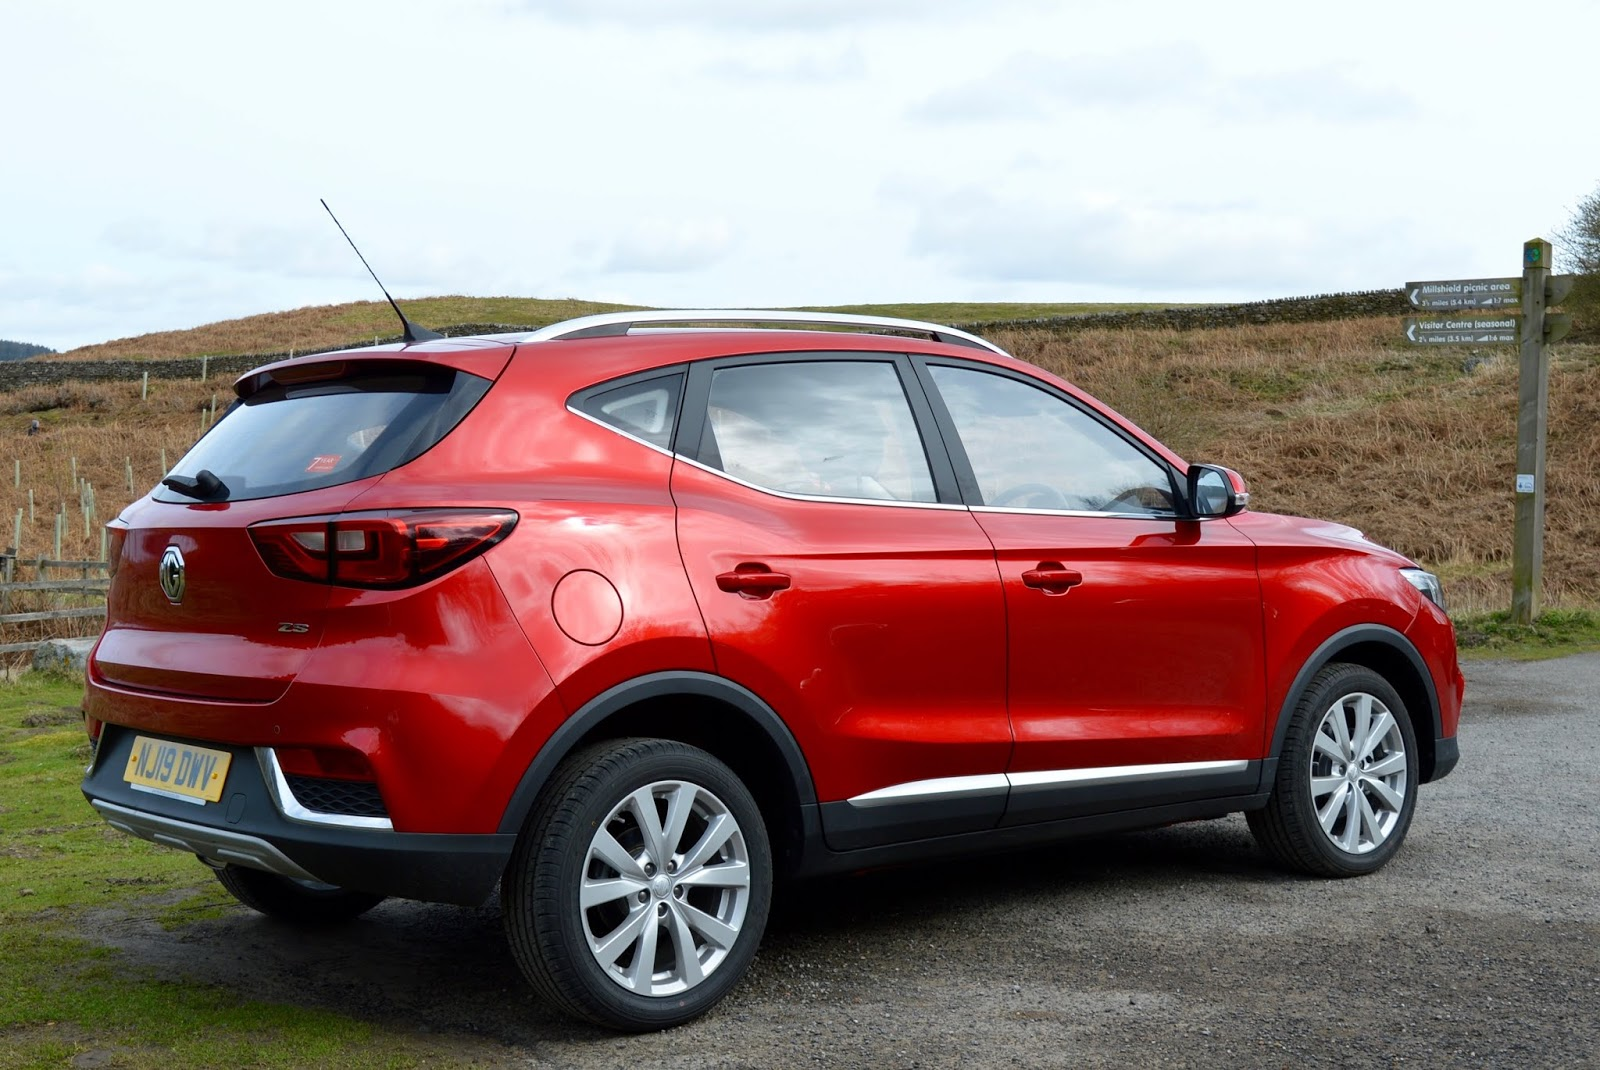 MG ZS 1.5 Excite Review | A New Compact SUV for less than £13,000 - back of car